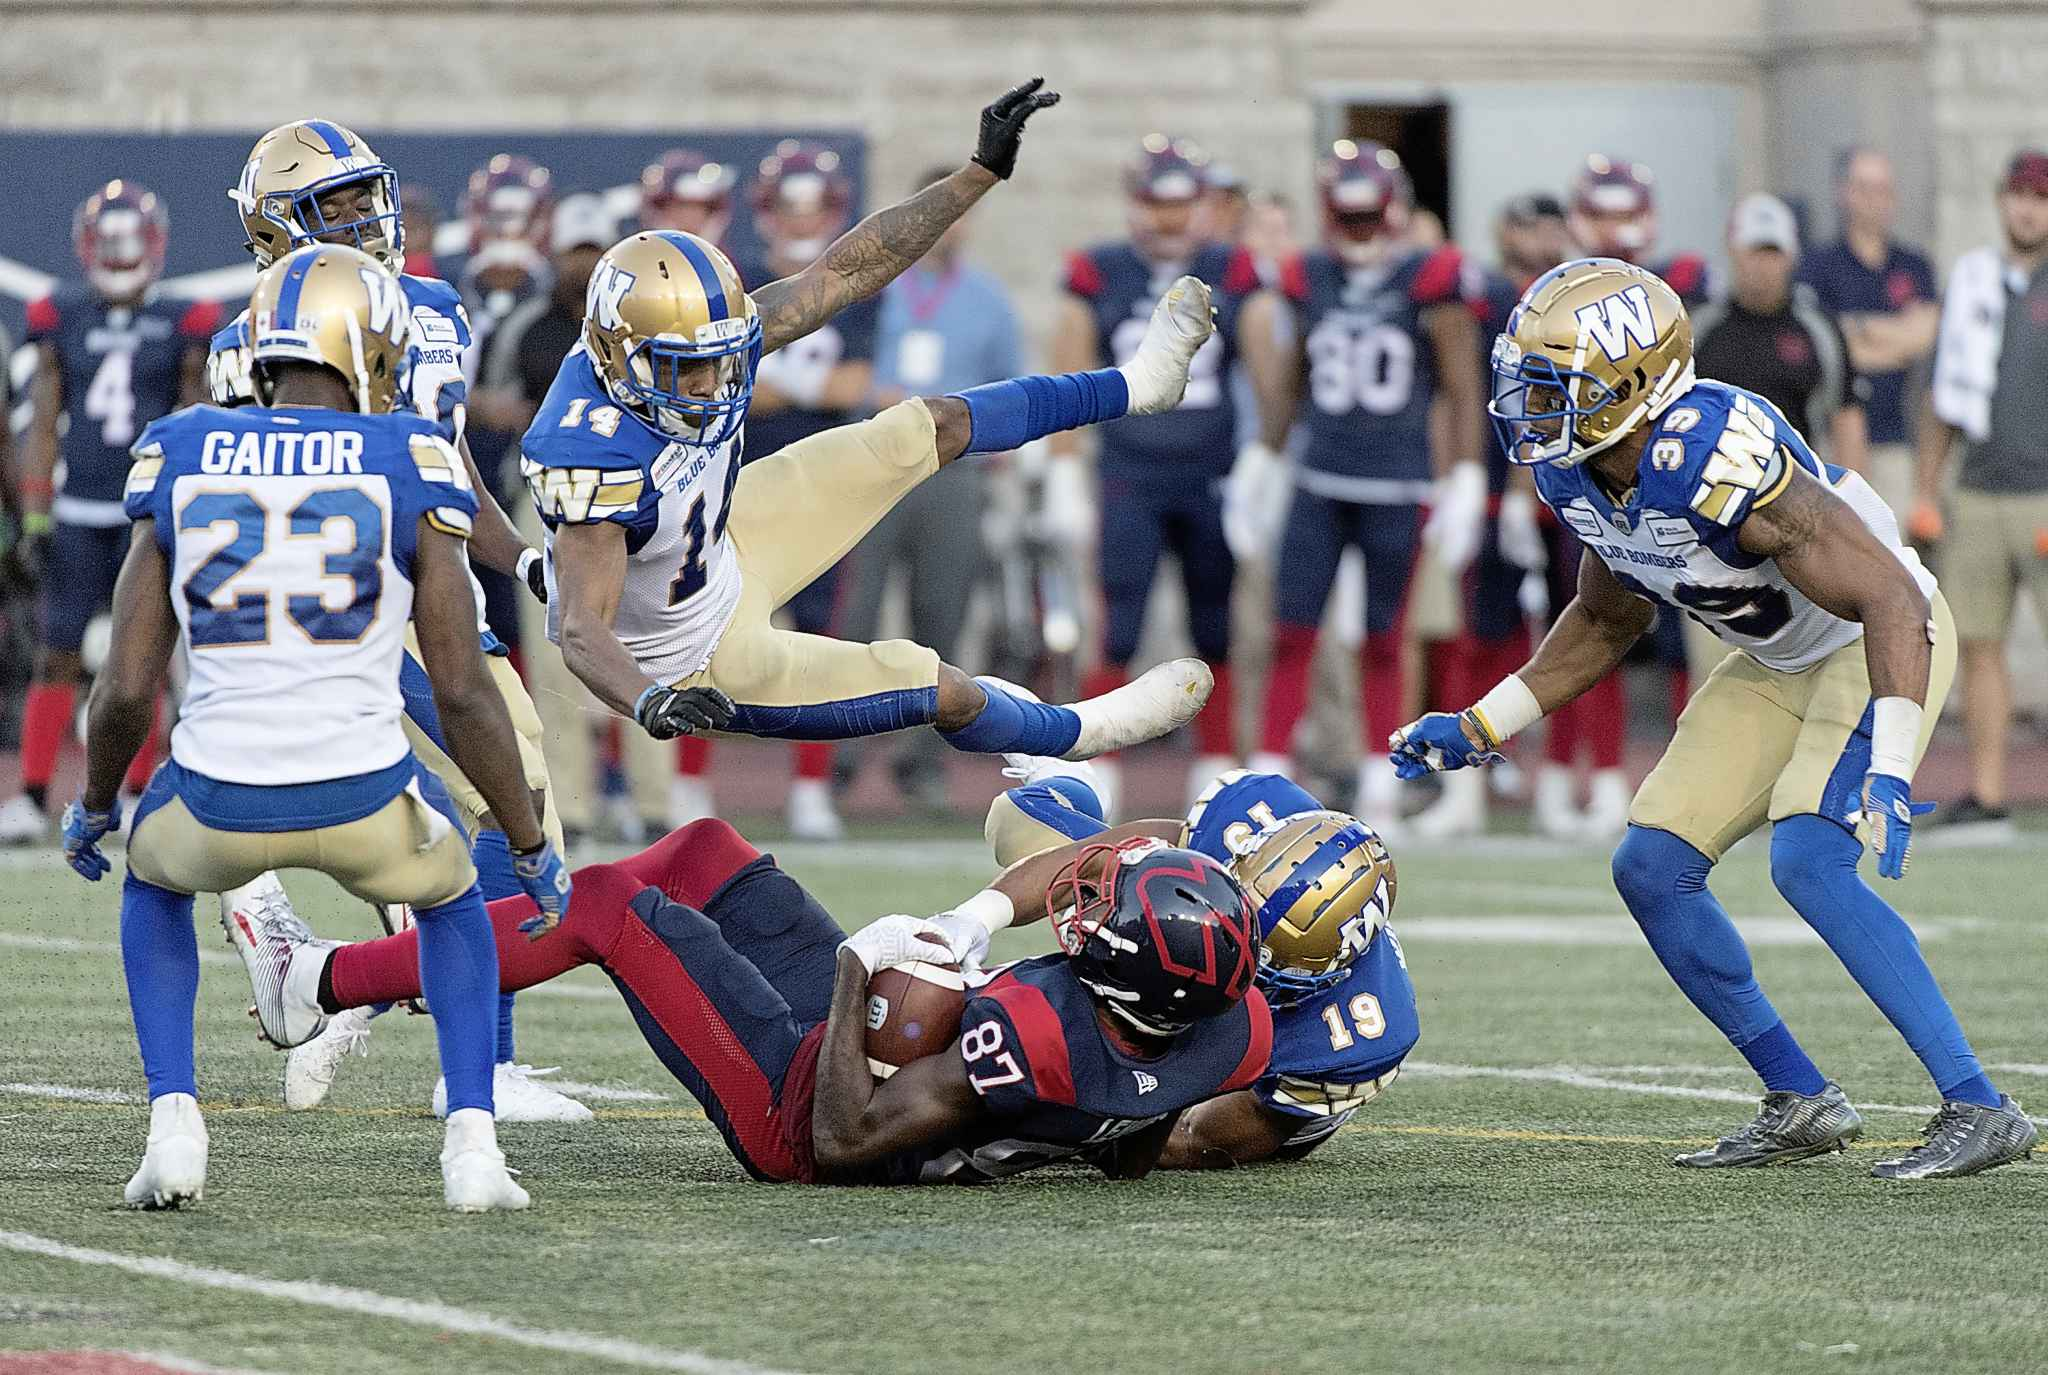 GRAHAM HUGHES / THE CANADIAN PRESS</p><p>Winnipeg Blue Bombers defensive back Marcus Sayles (14) avoids a collision between linebacker Kyrie Wilson (19) and Montreal Alouettes wide receiver Eugene Lewis (87) during second half CFL football action in Montreal, Saturday, September 21, 2019.</p>